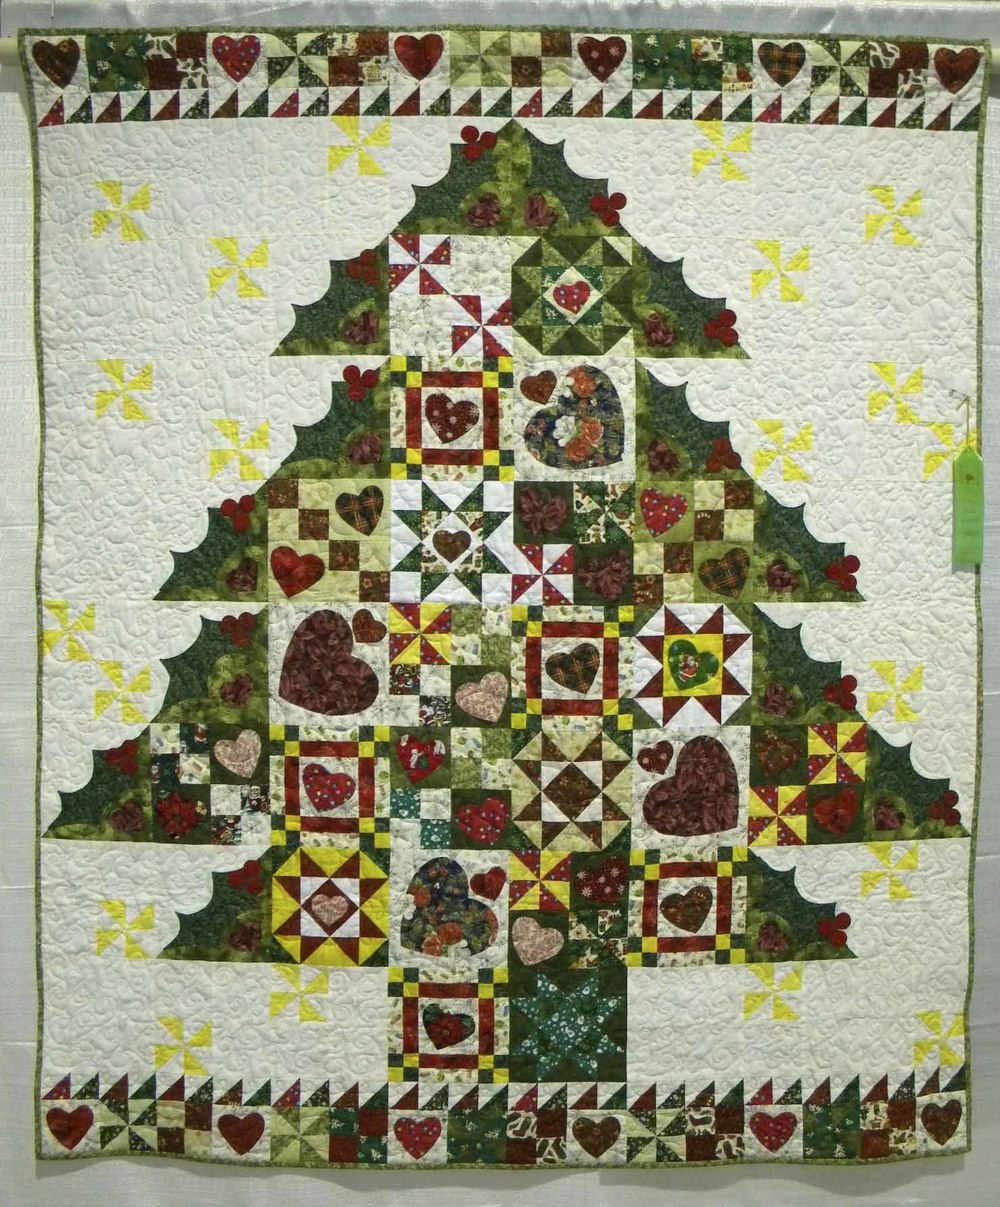 HM Prof Qlt Mixed-Large. My Beautiful Christmas Tree by Karen Barksdale